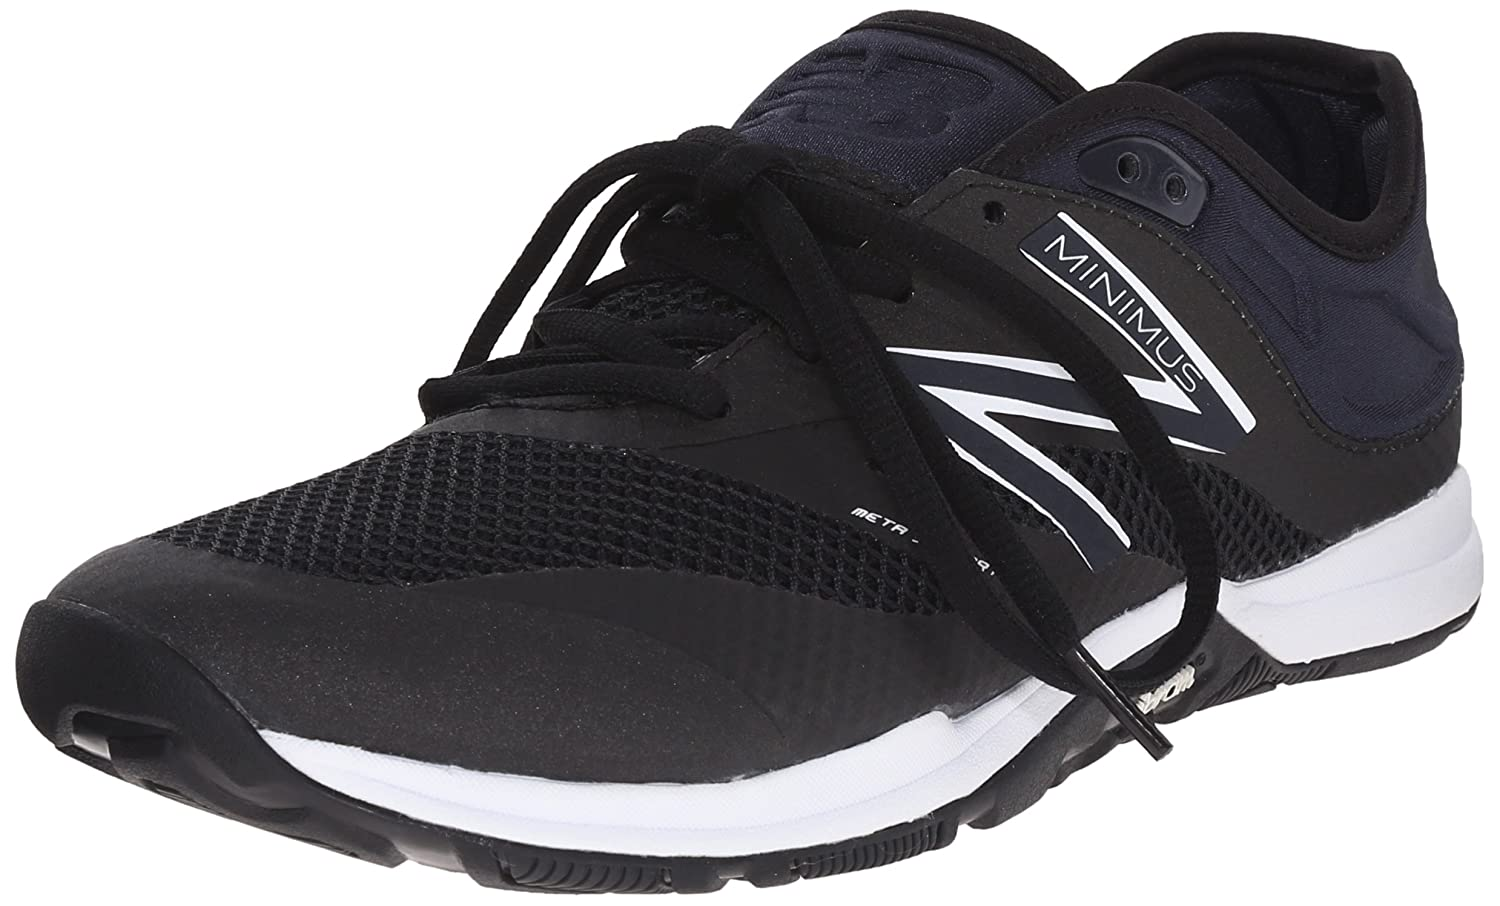 New Balance Women's 20v5 Minimus Training Shoe Black/White